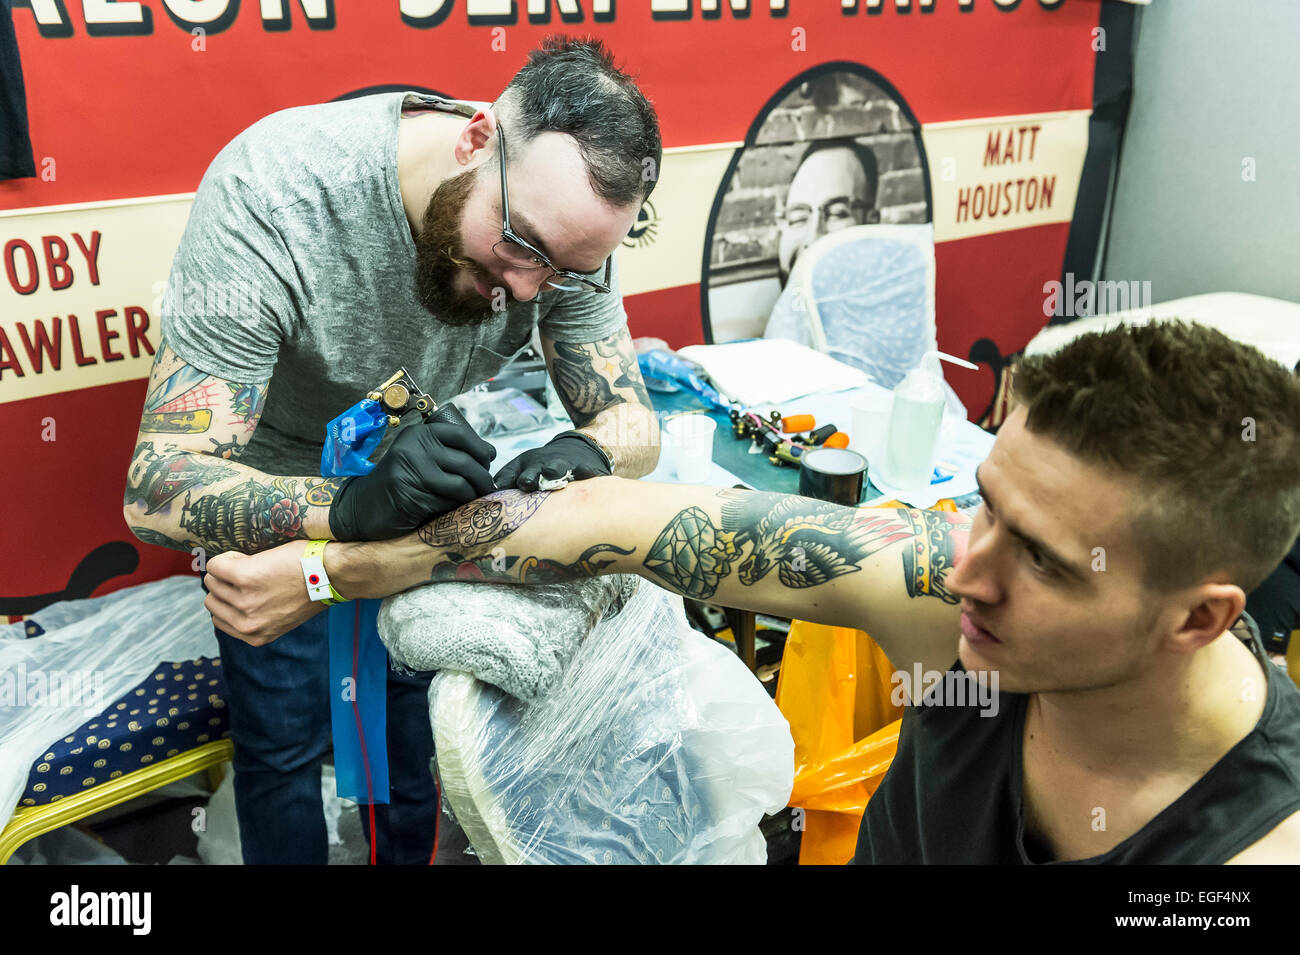 A man being tattooed on his arm at the Brighton tattoo Convention. - Stock Image